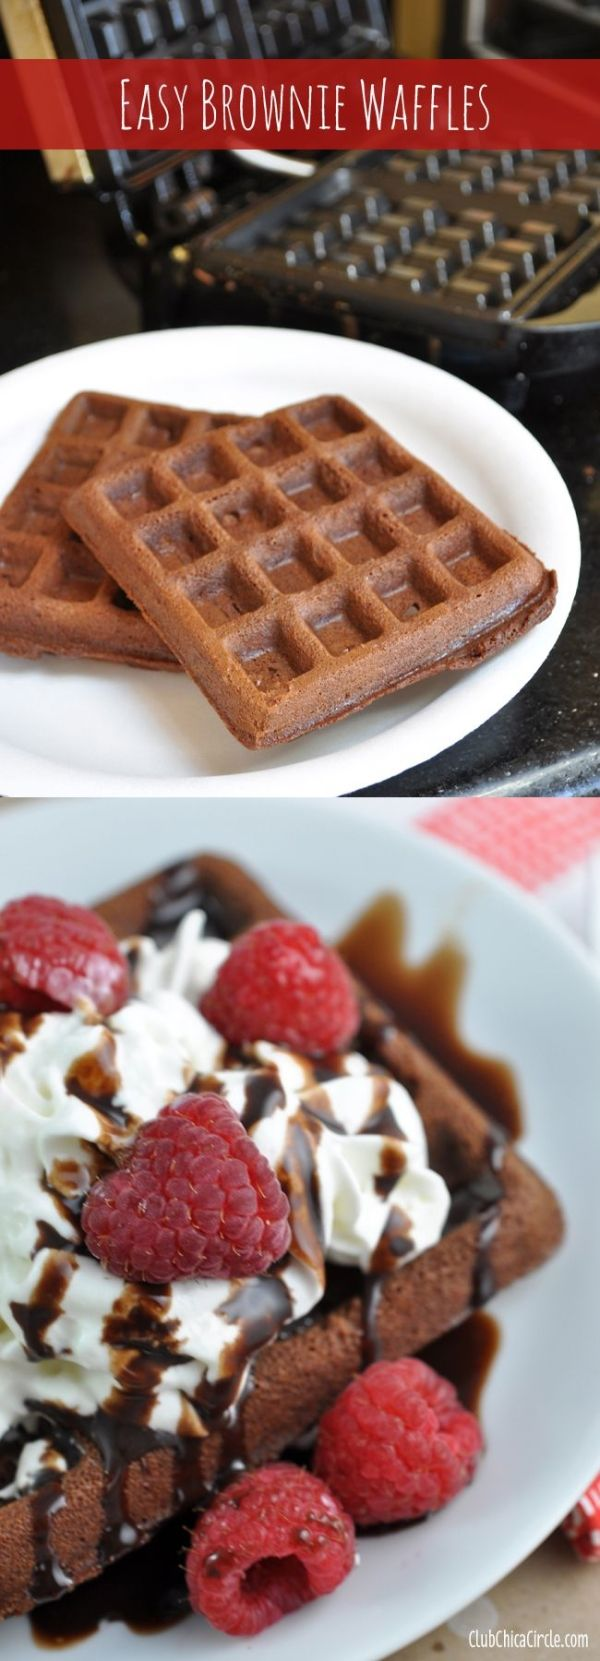 How to make brownie waffles that are so easy and yummy - start with your favorite chocolate brownie mix and add an extra egg. then cook in waffle iron. Top with whipped cream, chocolate sauce, and fresh berries for a yummy dessert idea! by aisha